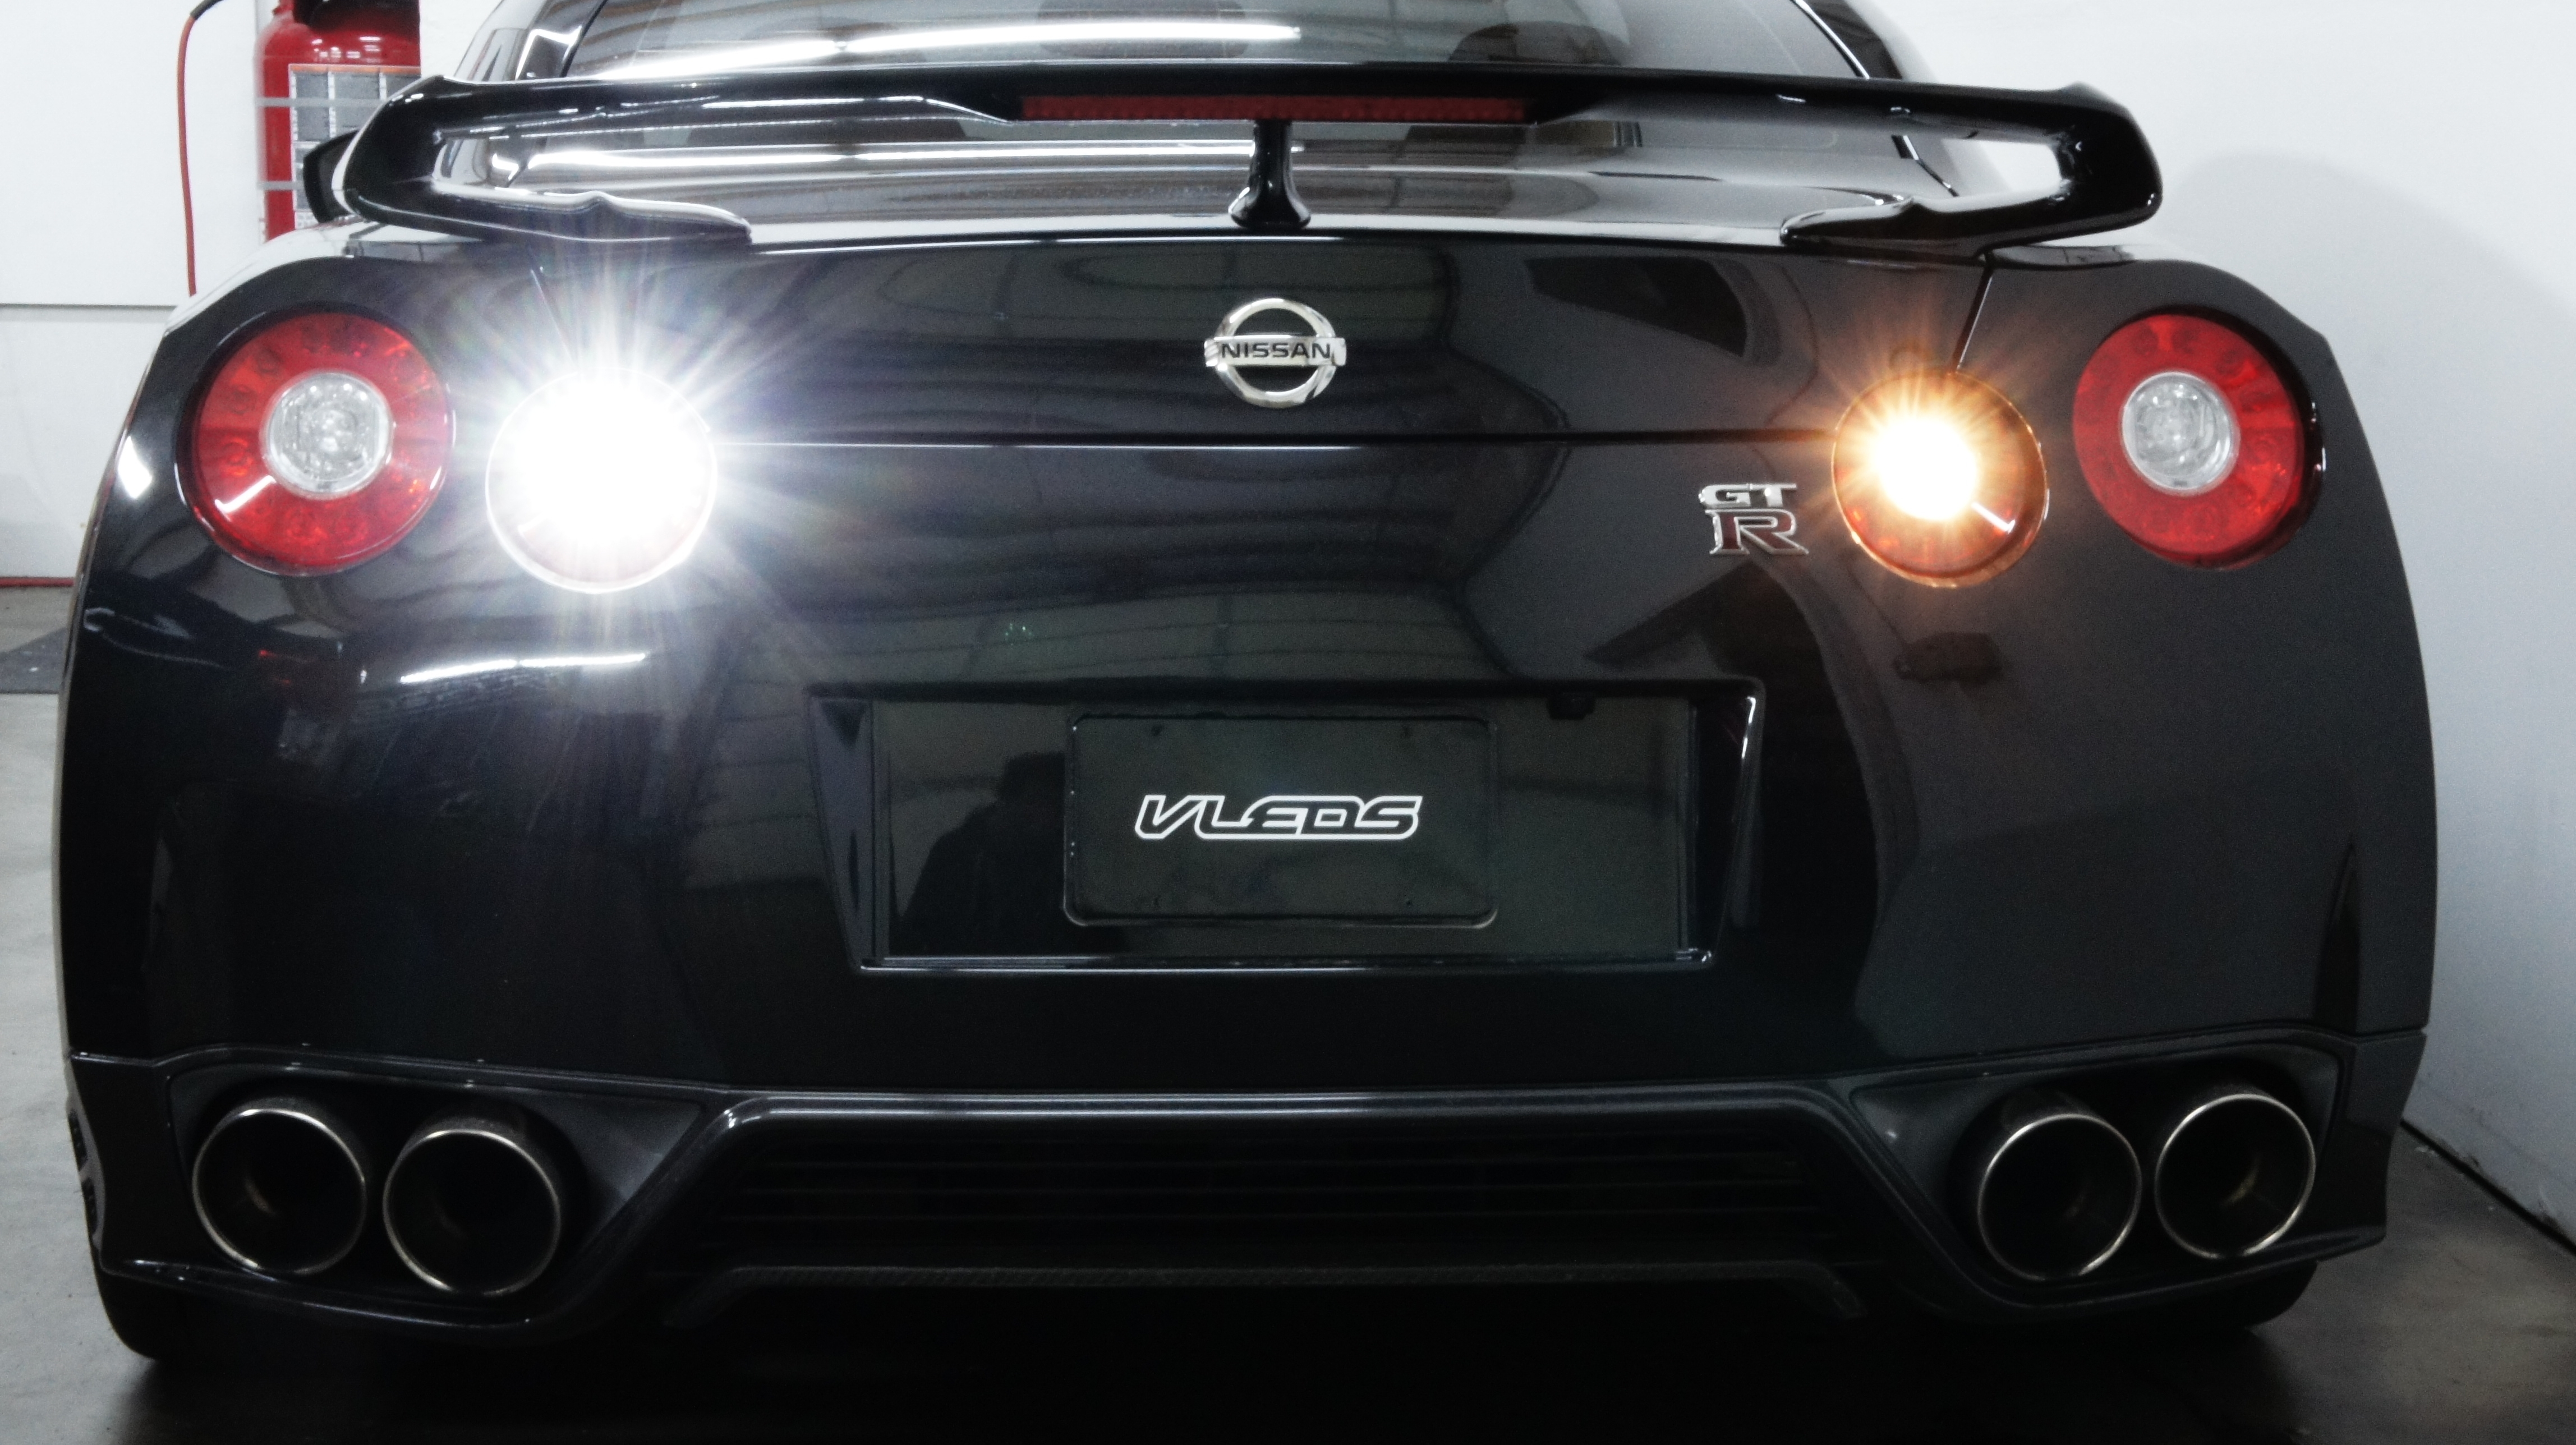 Magnificent High Performance Led Reverse Lights Vleds Bulbs For Cars Trucks Wiring Digital Resources Bemuashebarightsorg